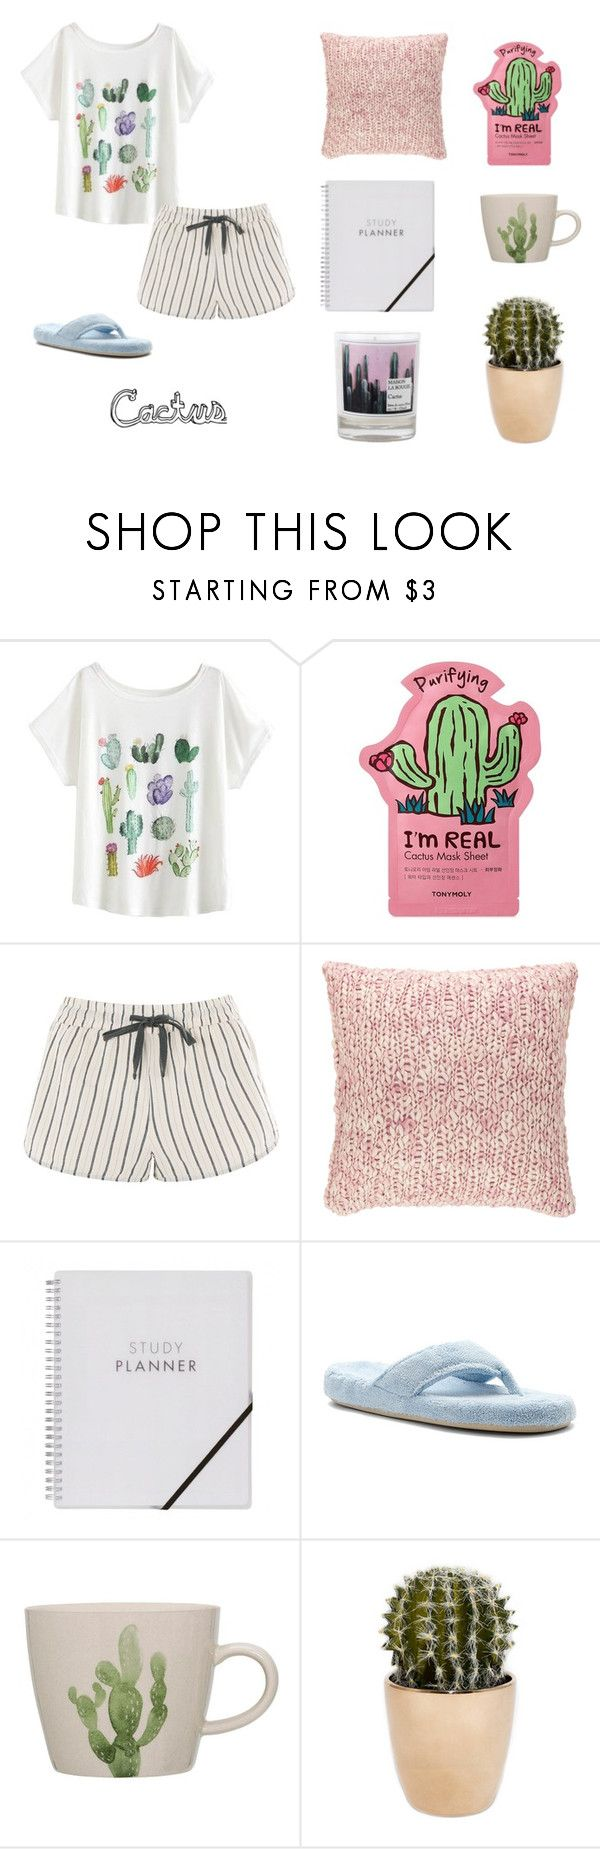 """Don't be a cactus"" by miri-rose03 ❤ liked on Polyvore featuring TONYMOLY, Topshop, Pine Cone Hill, Acorn and Maison La Bougie"